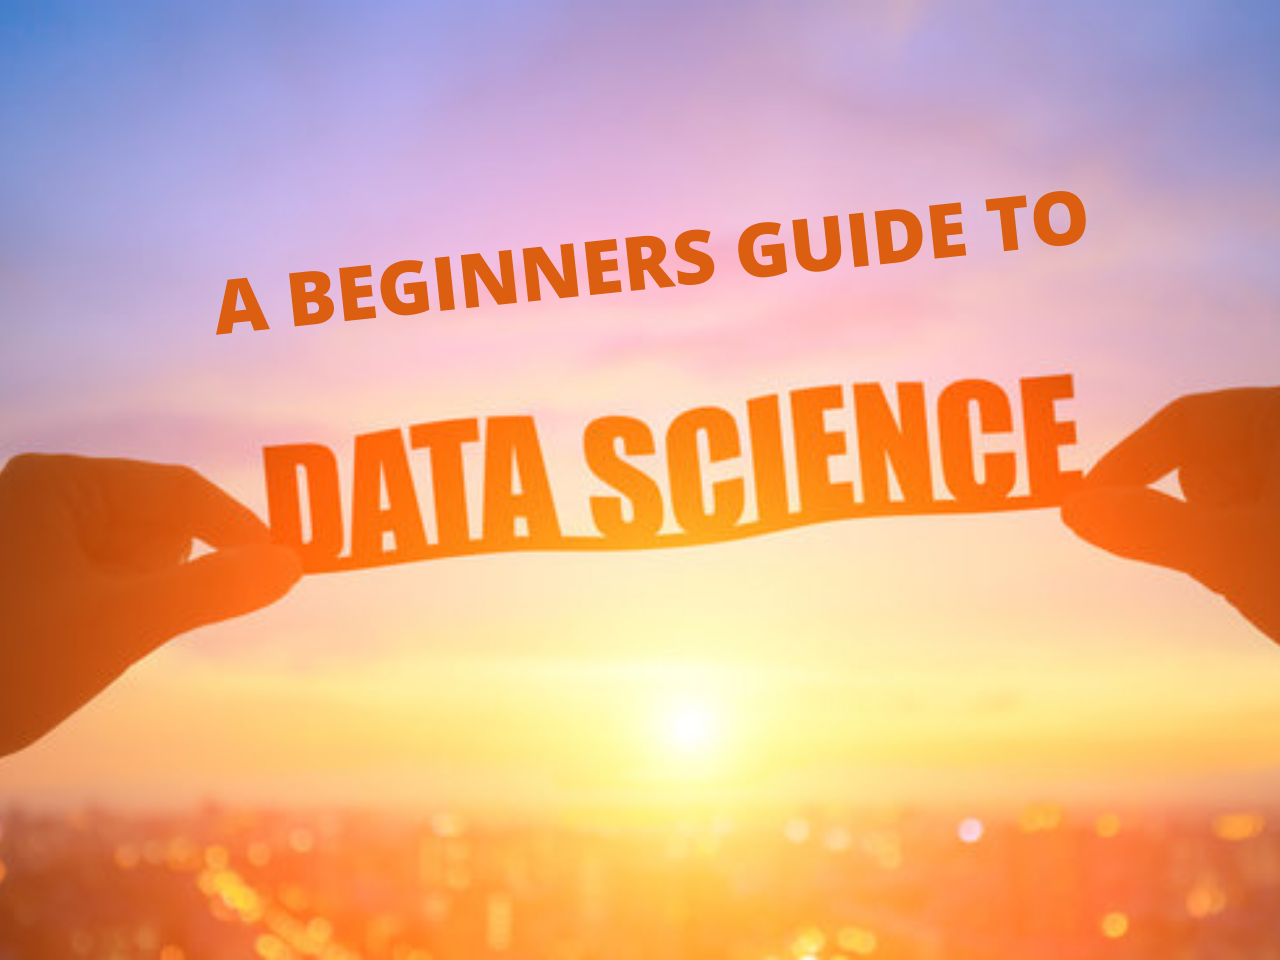 A BEGINNERS GUIDE TO DATA SCIENCE